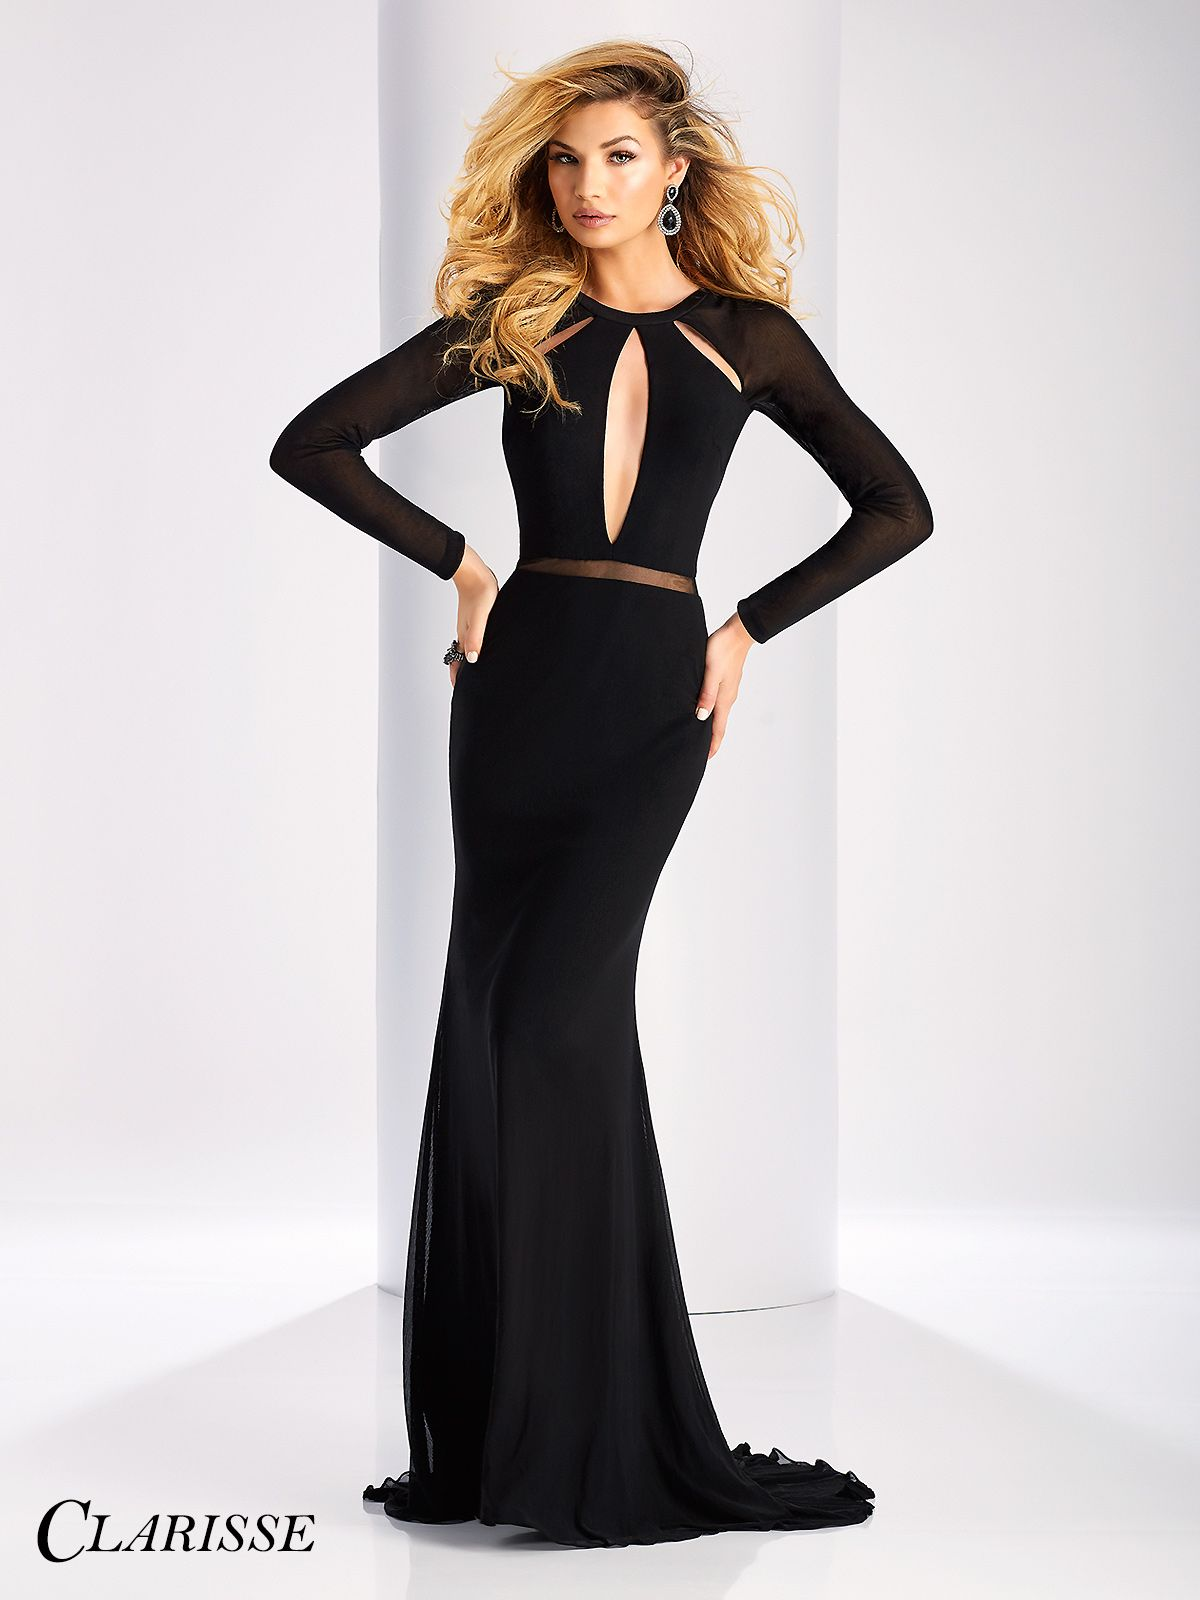 Clarisse Long Sleeve Cutout Detail Dress 4859   Neckline, Prom and ...